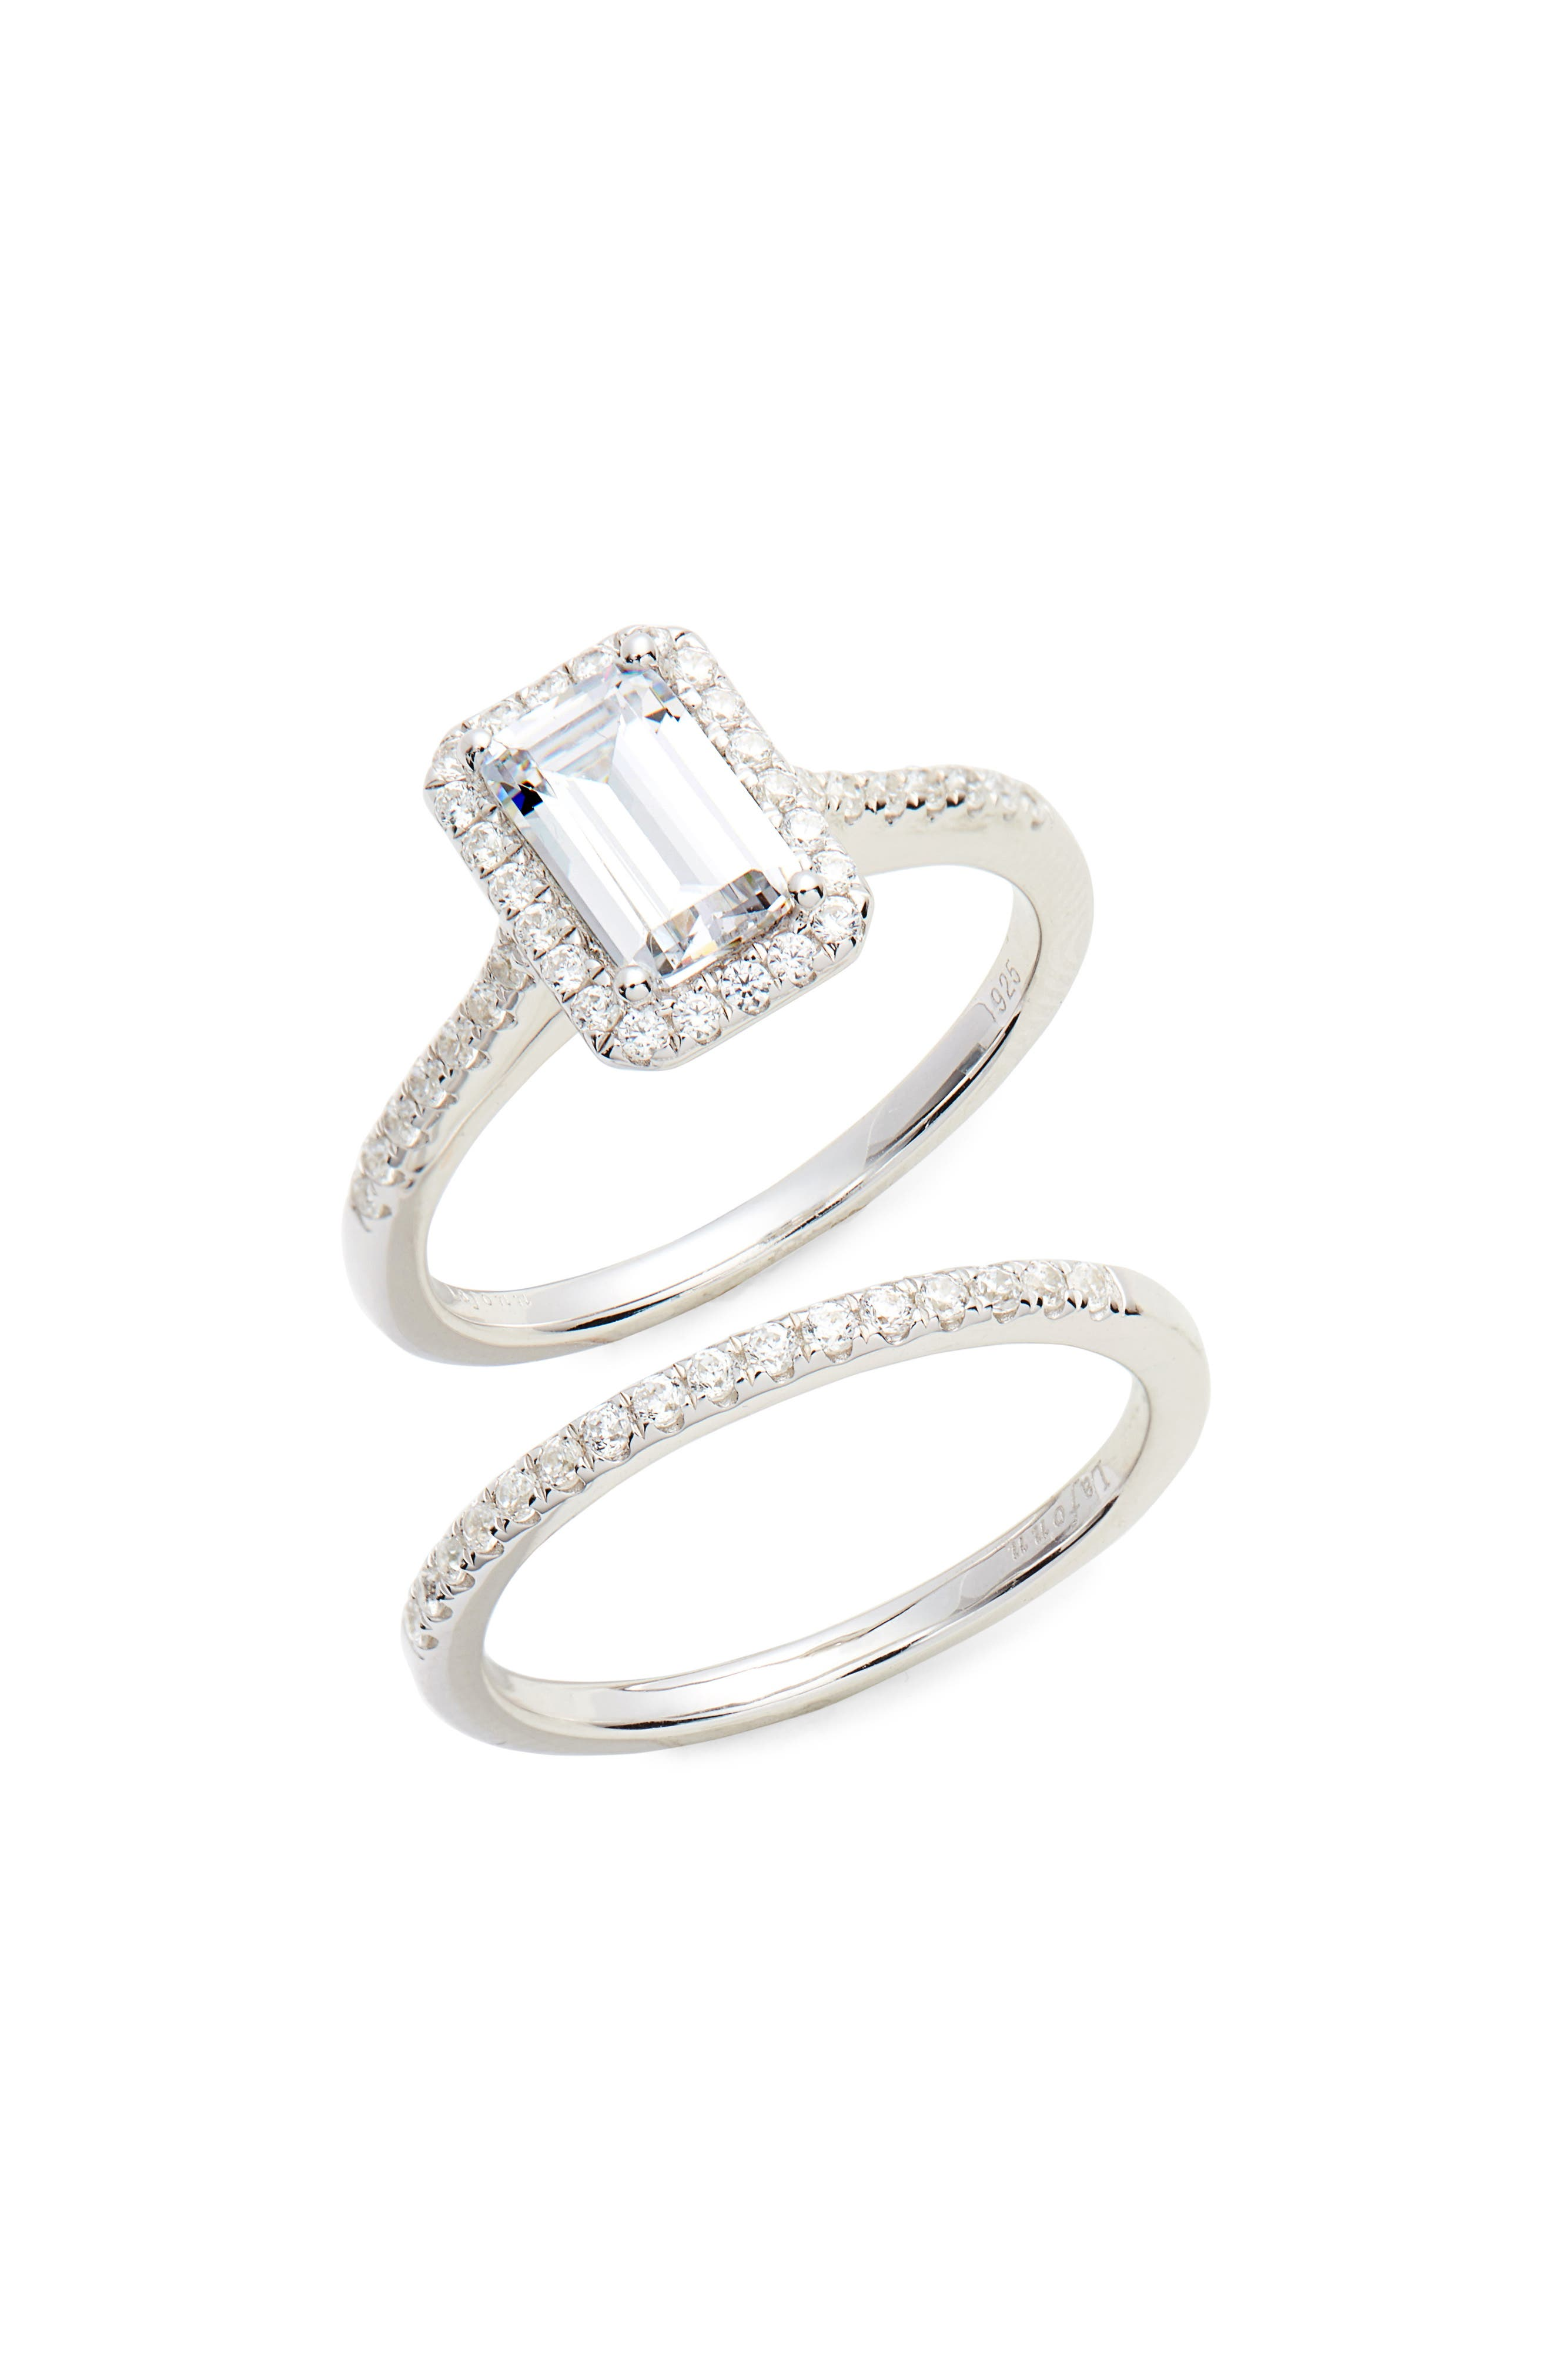 LAFONN Emerald Cut Halo Engagement Ring & Wedding Band Set, Main, color, SILVER/ CLEAR